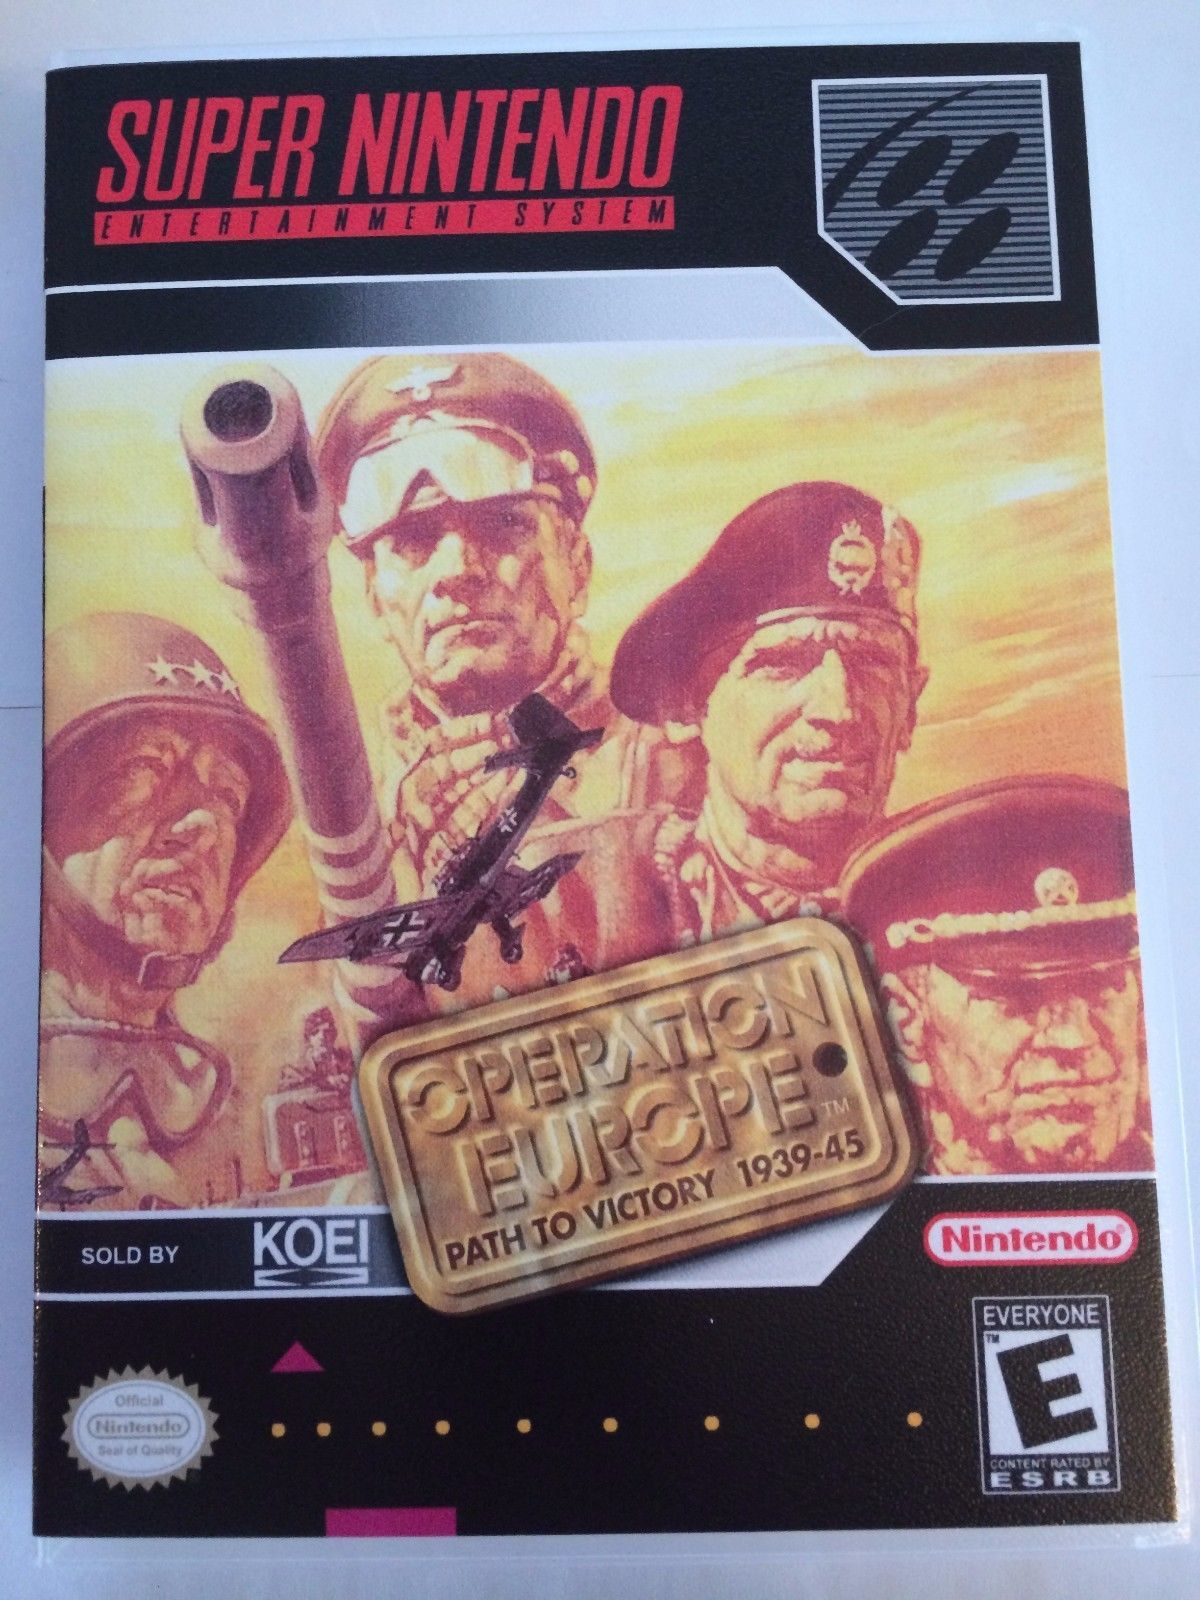 Operation Europe - Super Nintendo - Replacement Case - No Game